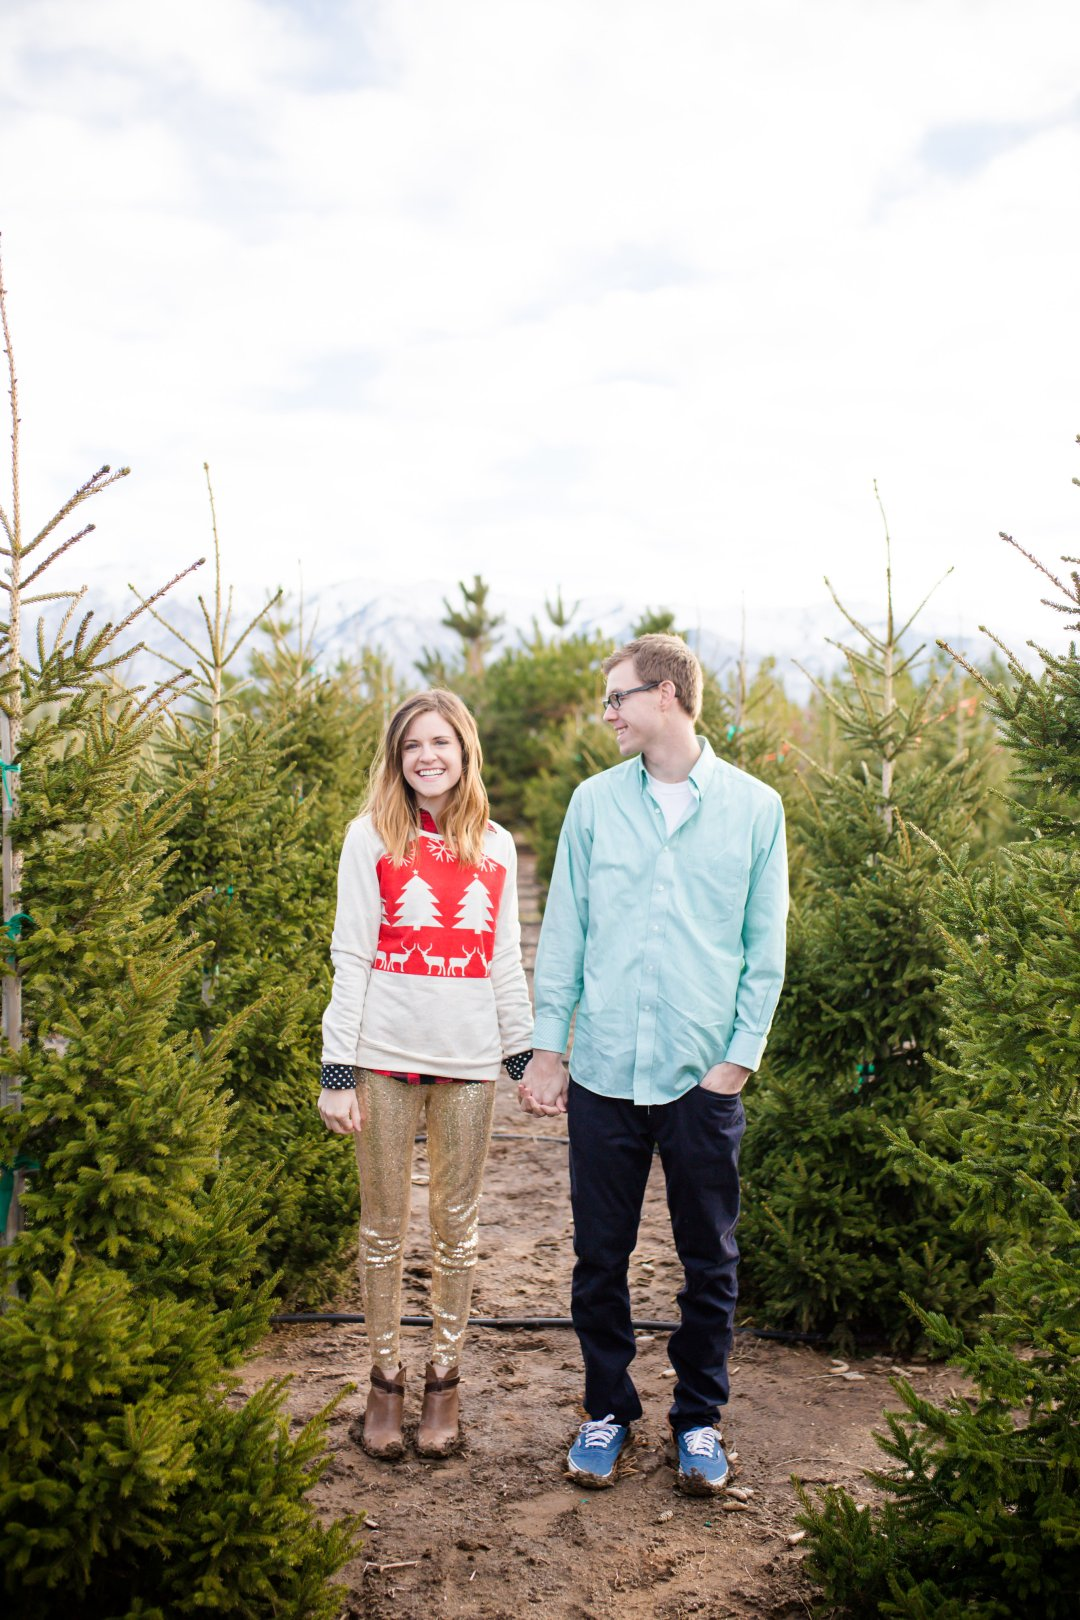 View More: http://charissaleephoto.pass.us/kyle--karli-christmas